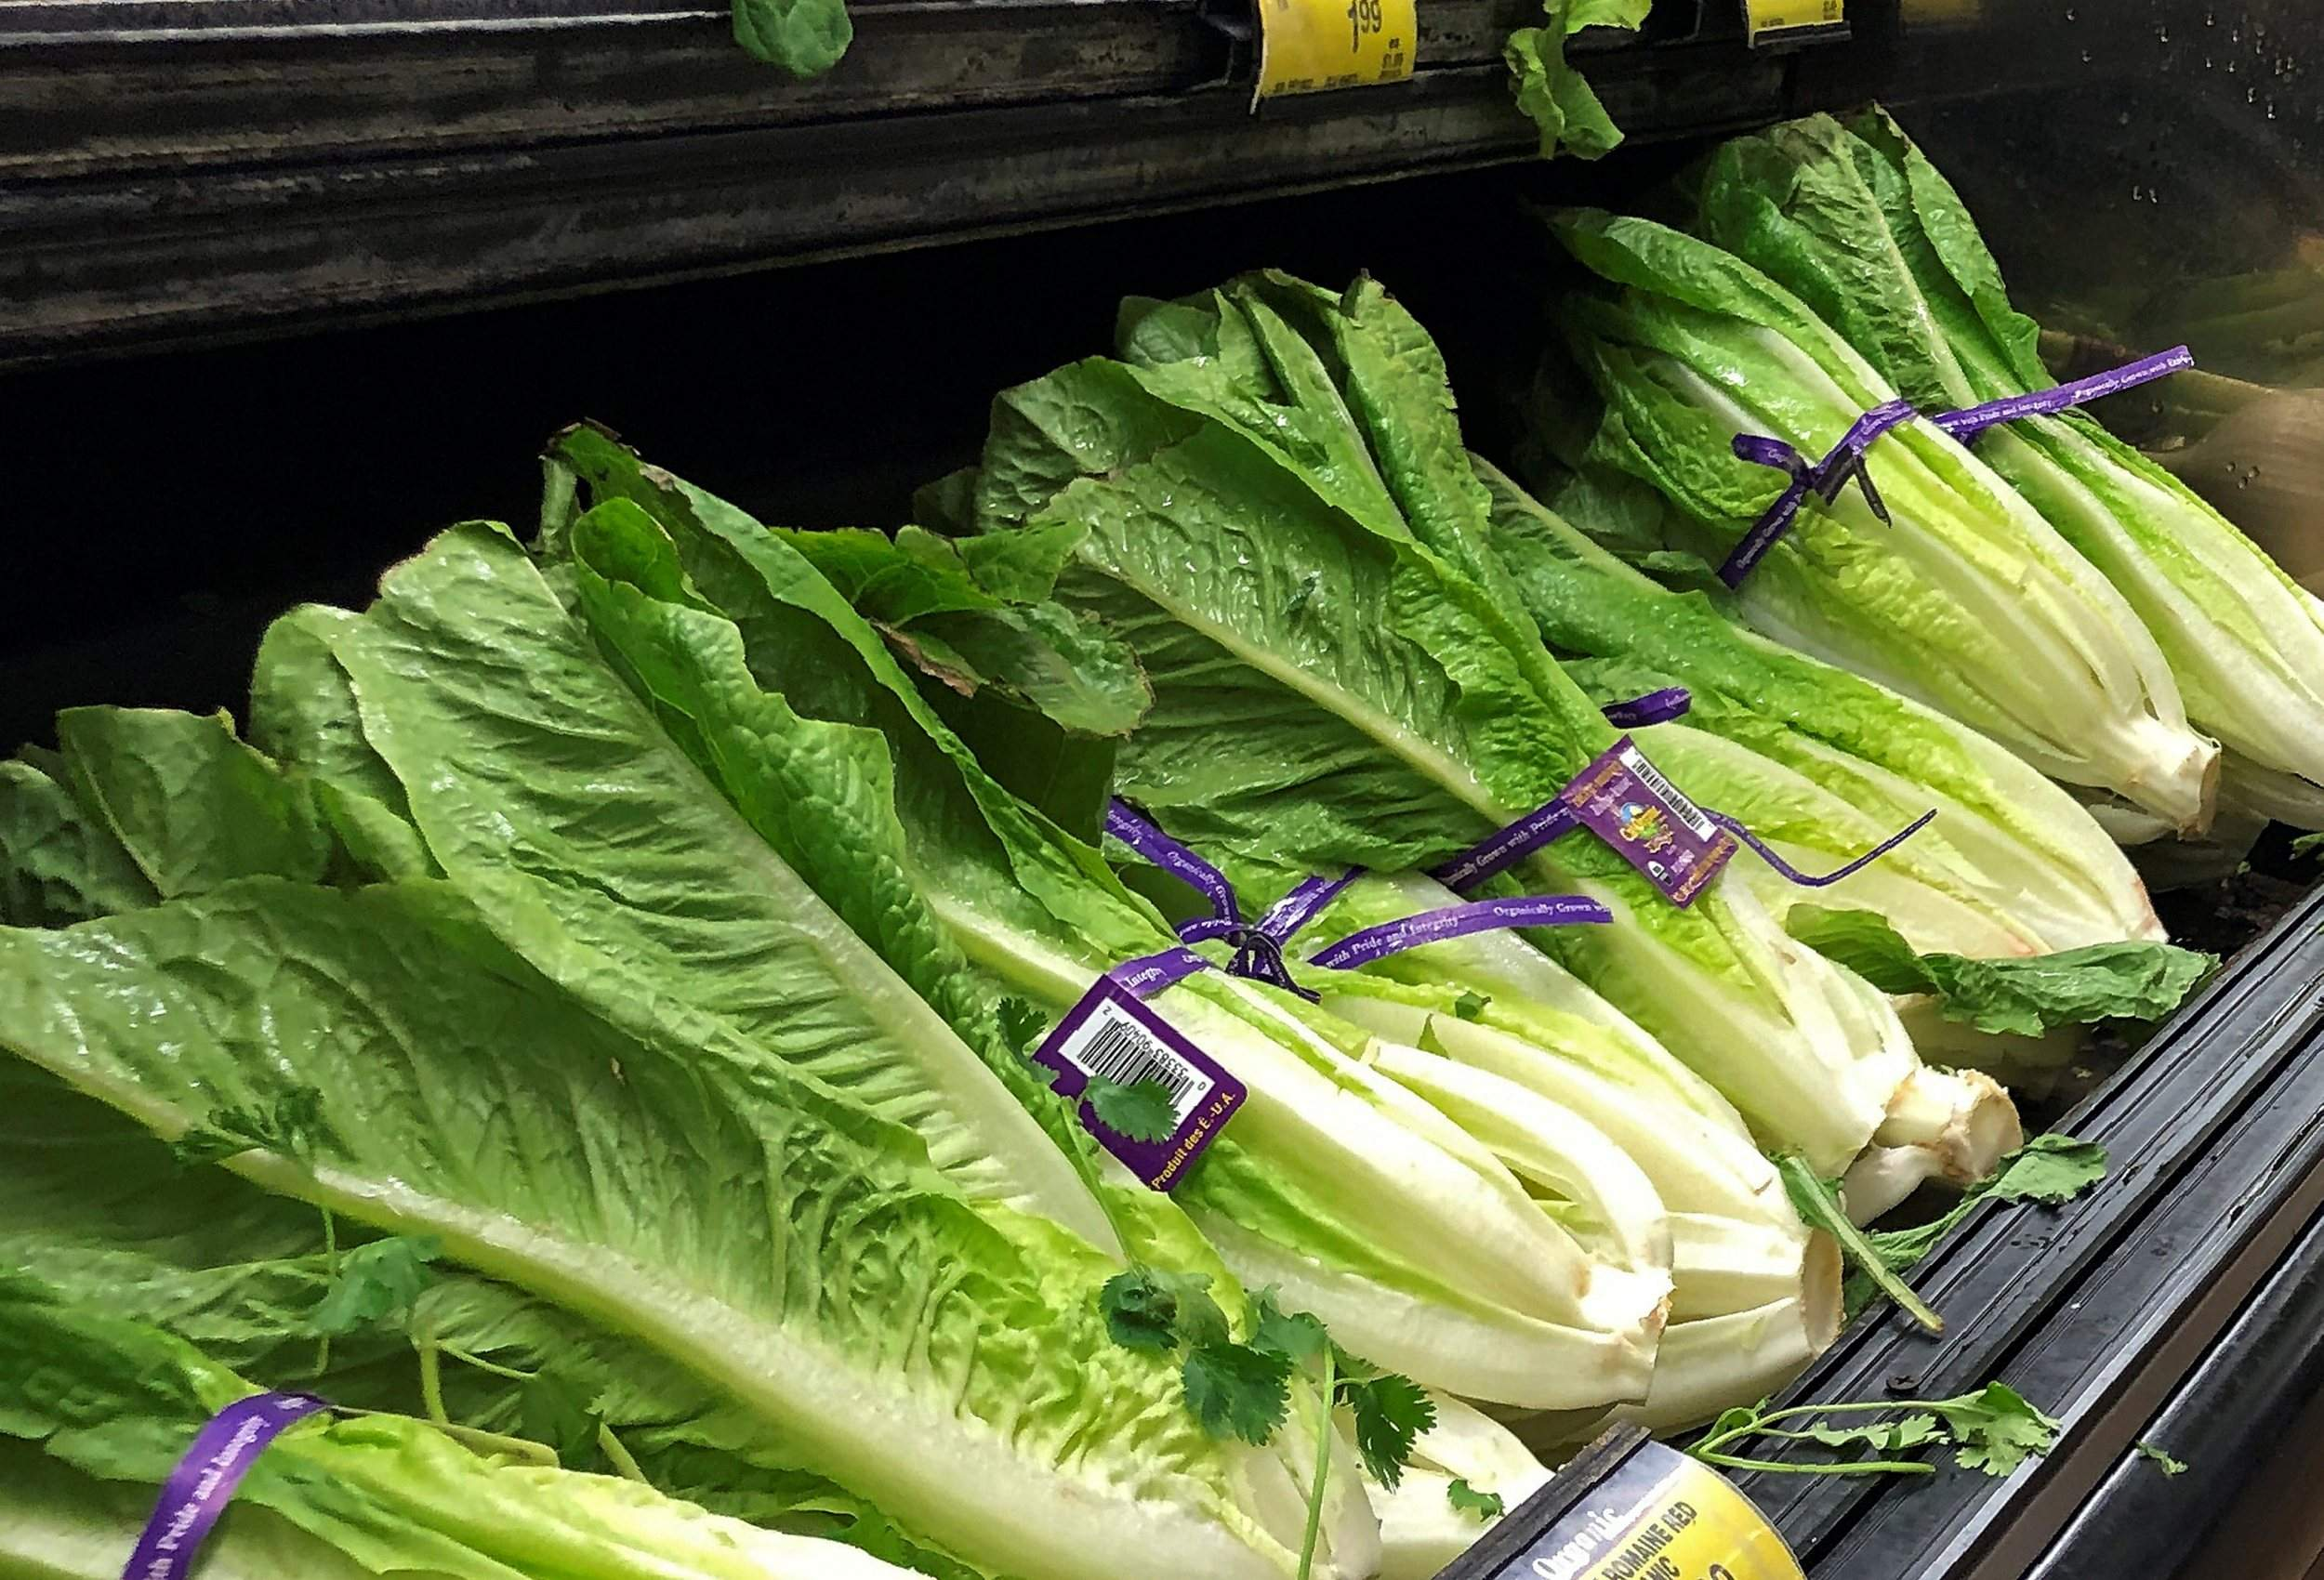 King County man diagnosed with E. coli linked to romaine